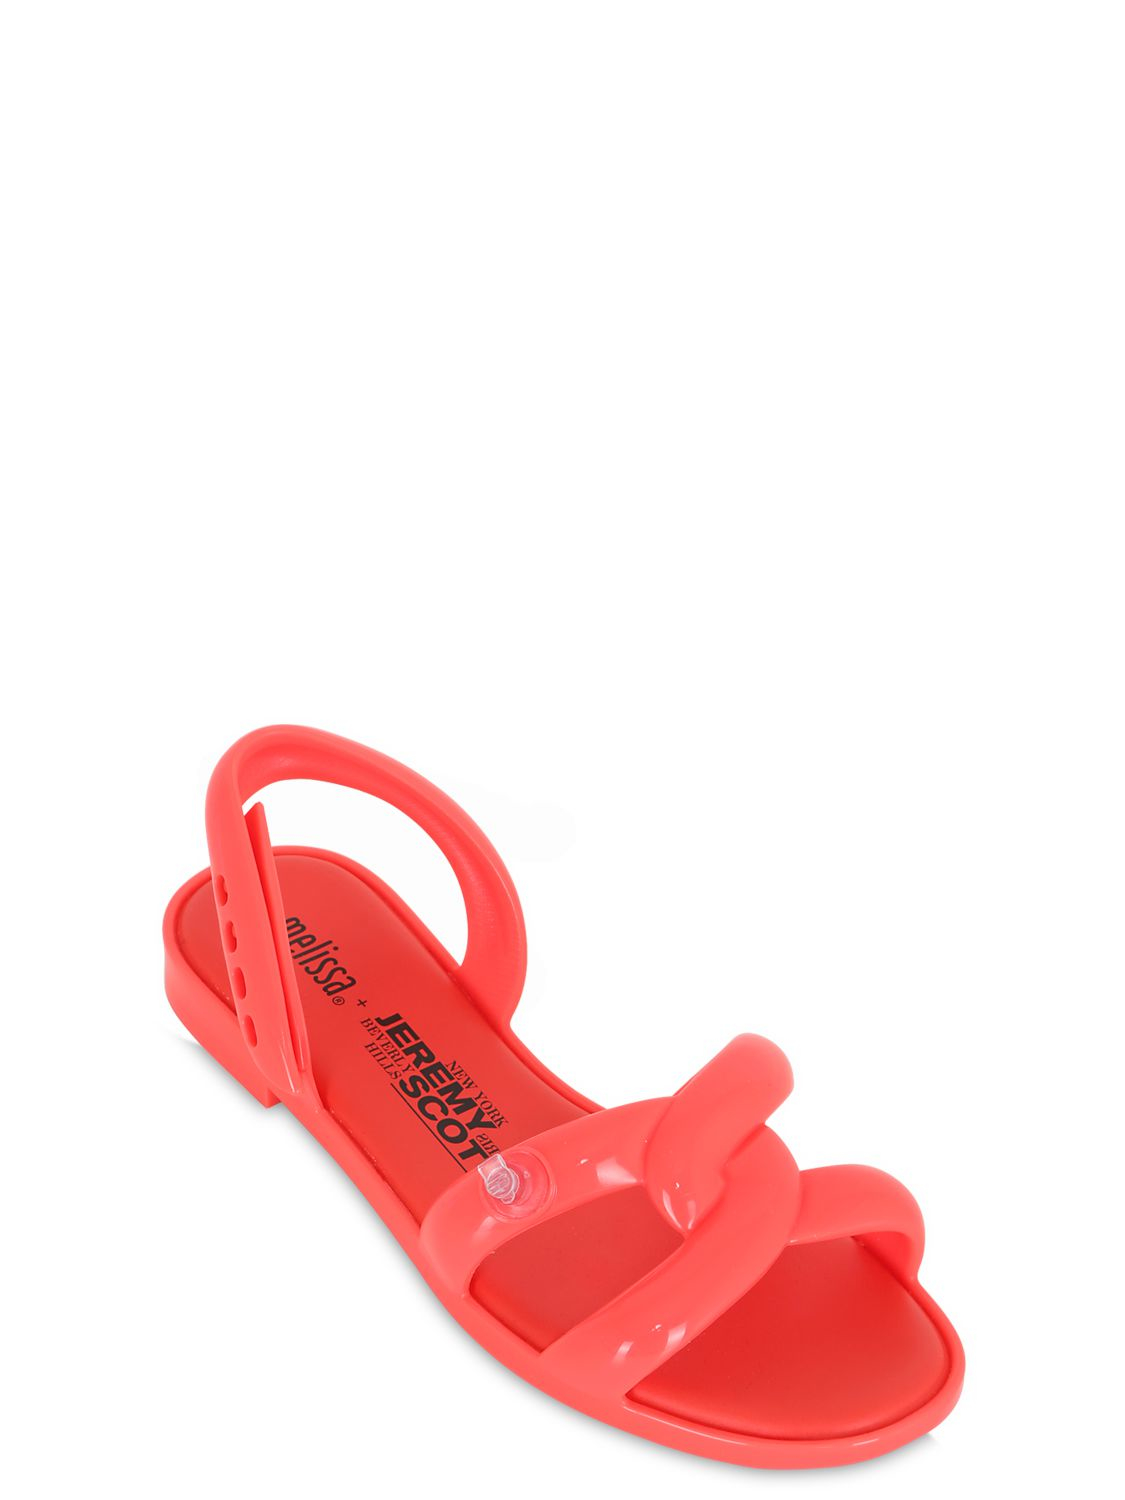 Melissa 10mm Inflatable Rubber Sandals in Red | Lyst